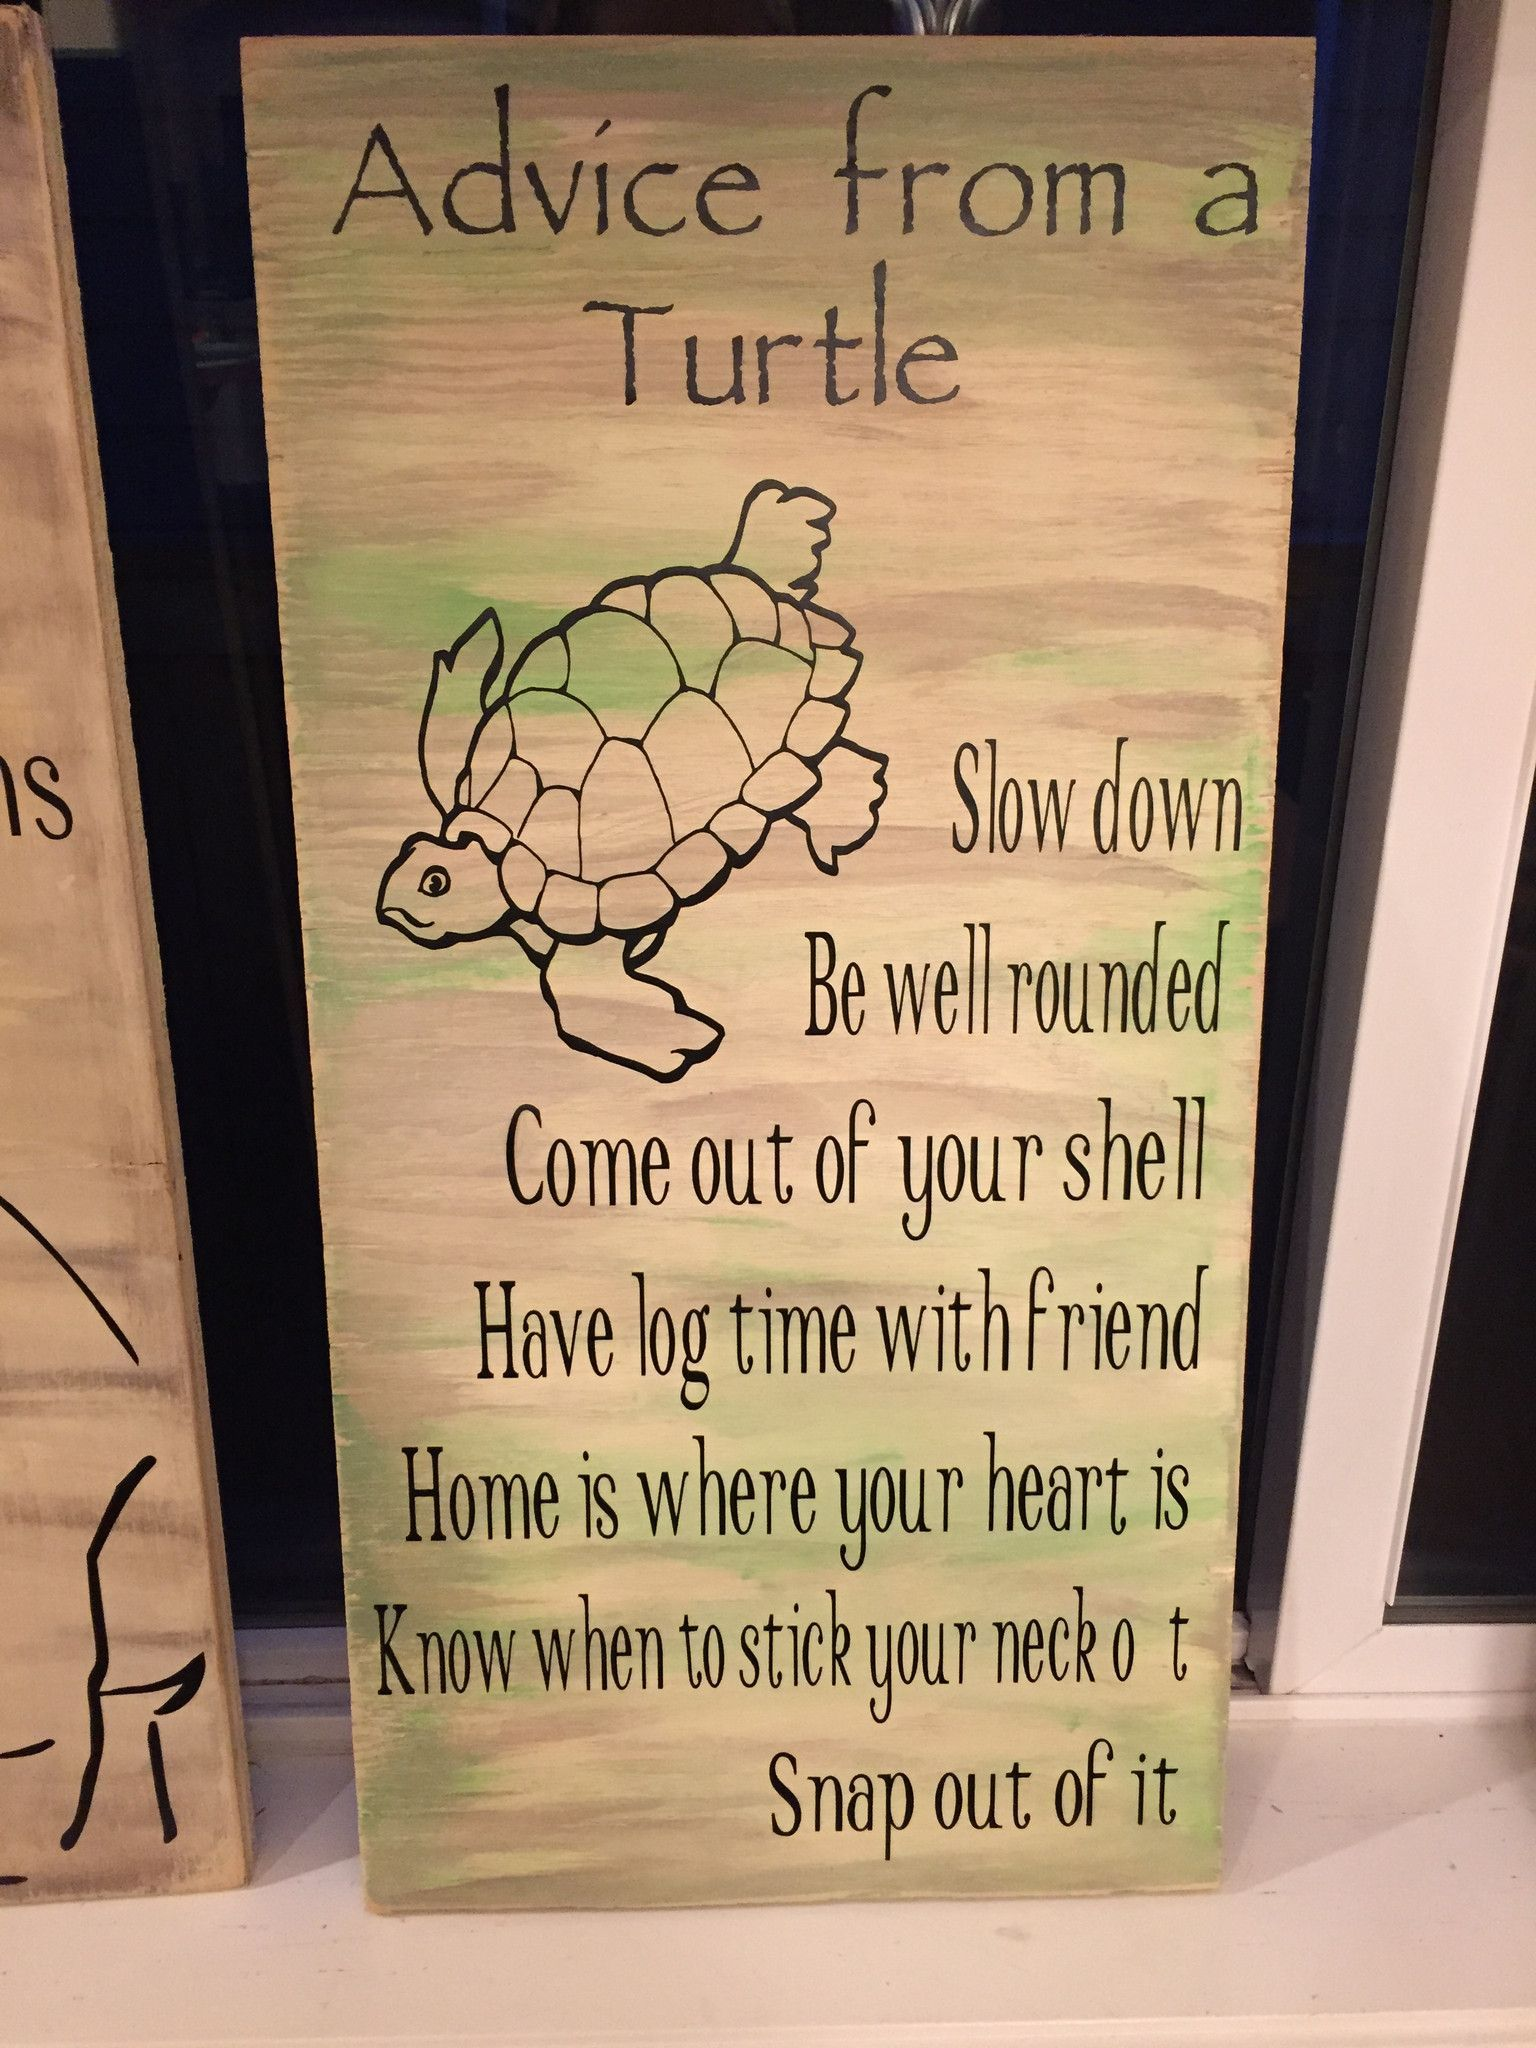 PERSONALISED HANDMADE WOODEN TORTOISE SHAPED PLAQUE SIGN FOR TORTOISE HOME GIFT